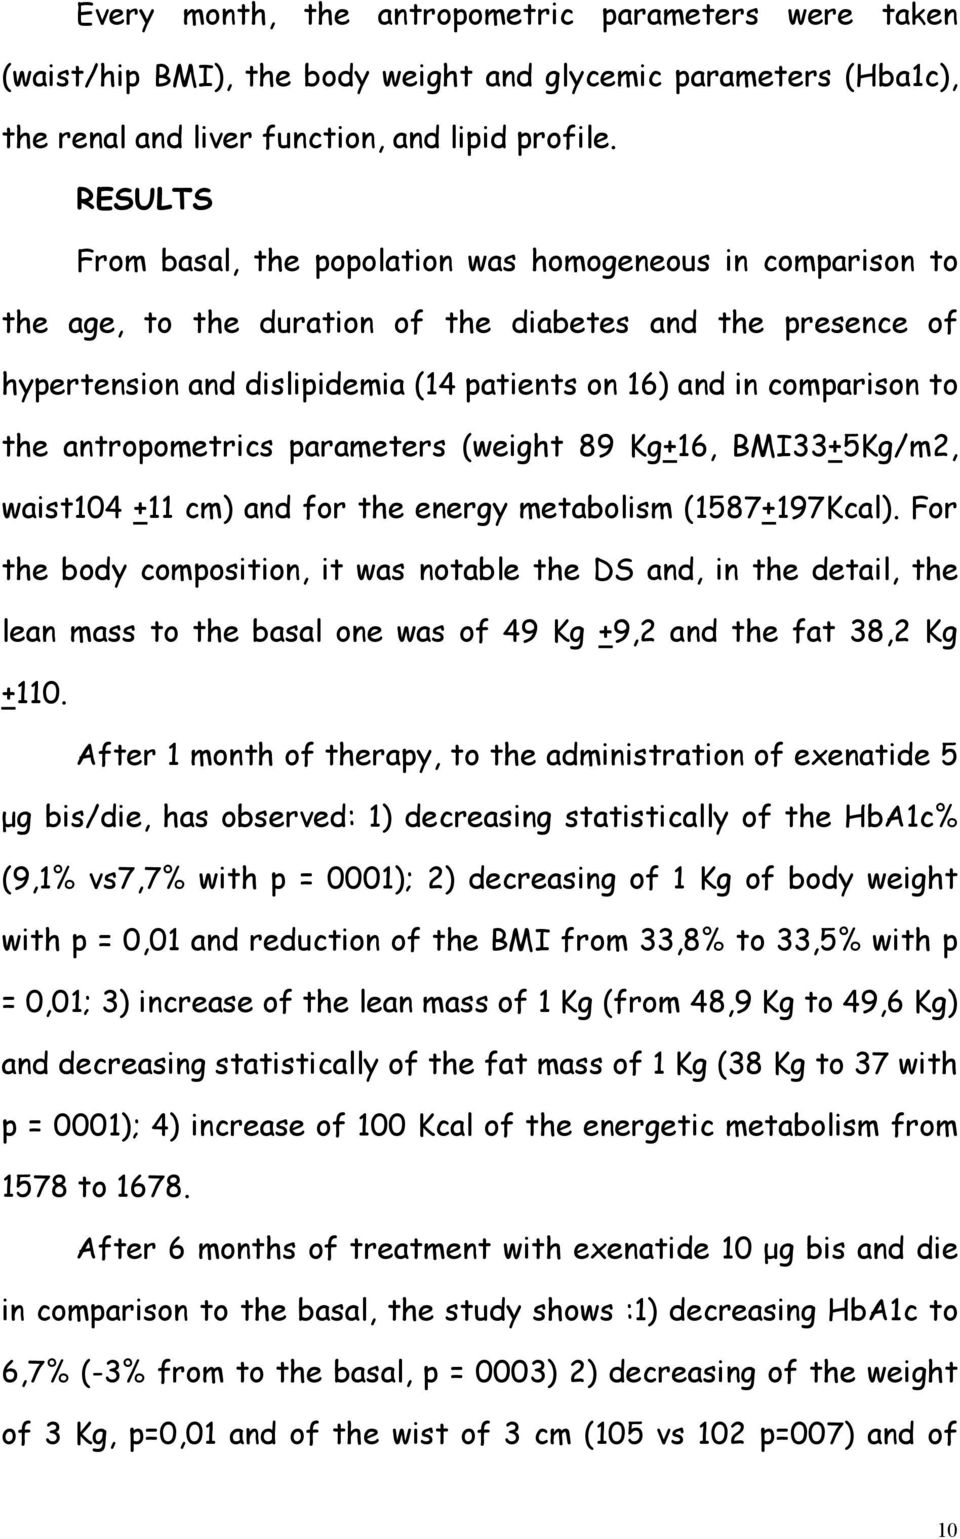 the antropometrics parameters (weight 89 Kg+16, BMI33+5Kg/m2, waist104 +11 cm) and for the energy metabolism (1587+197Kcal).